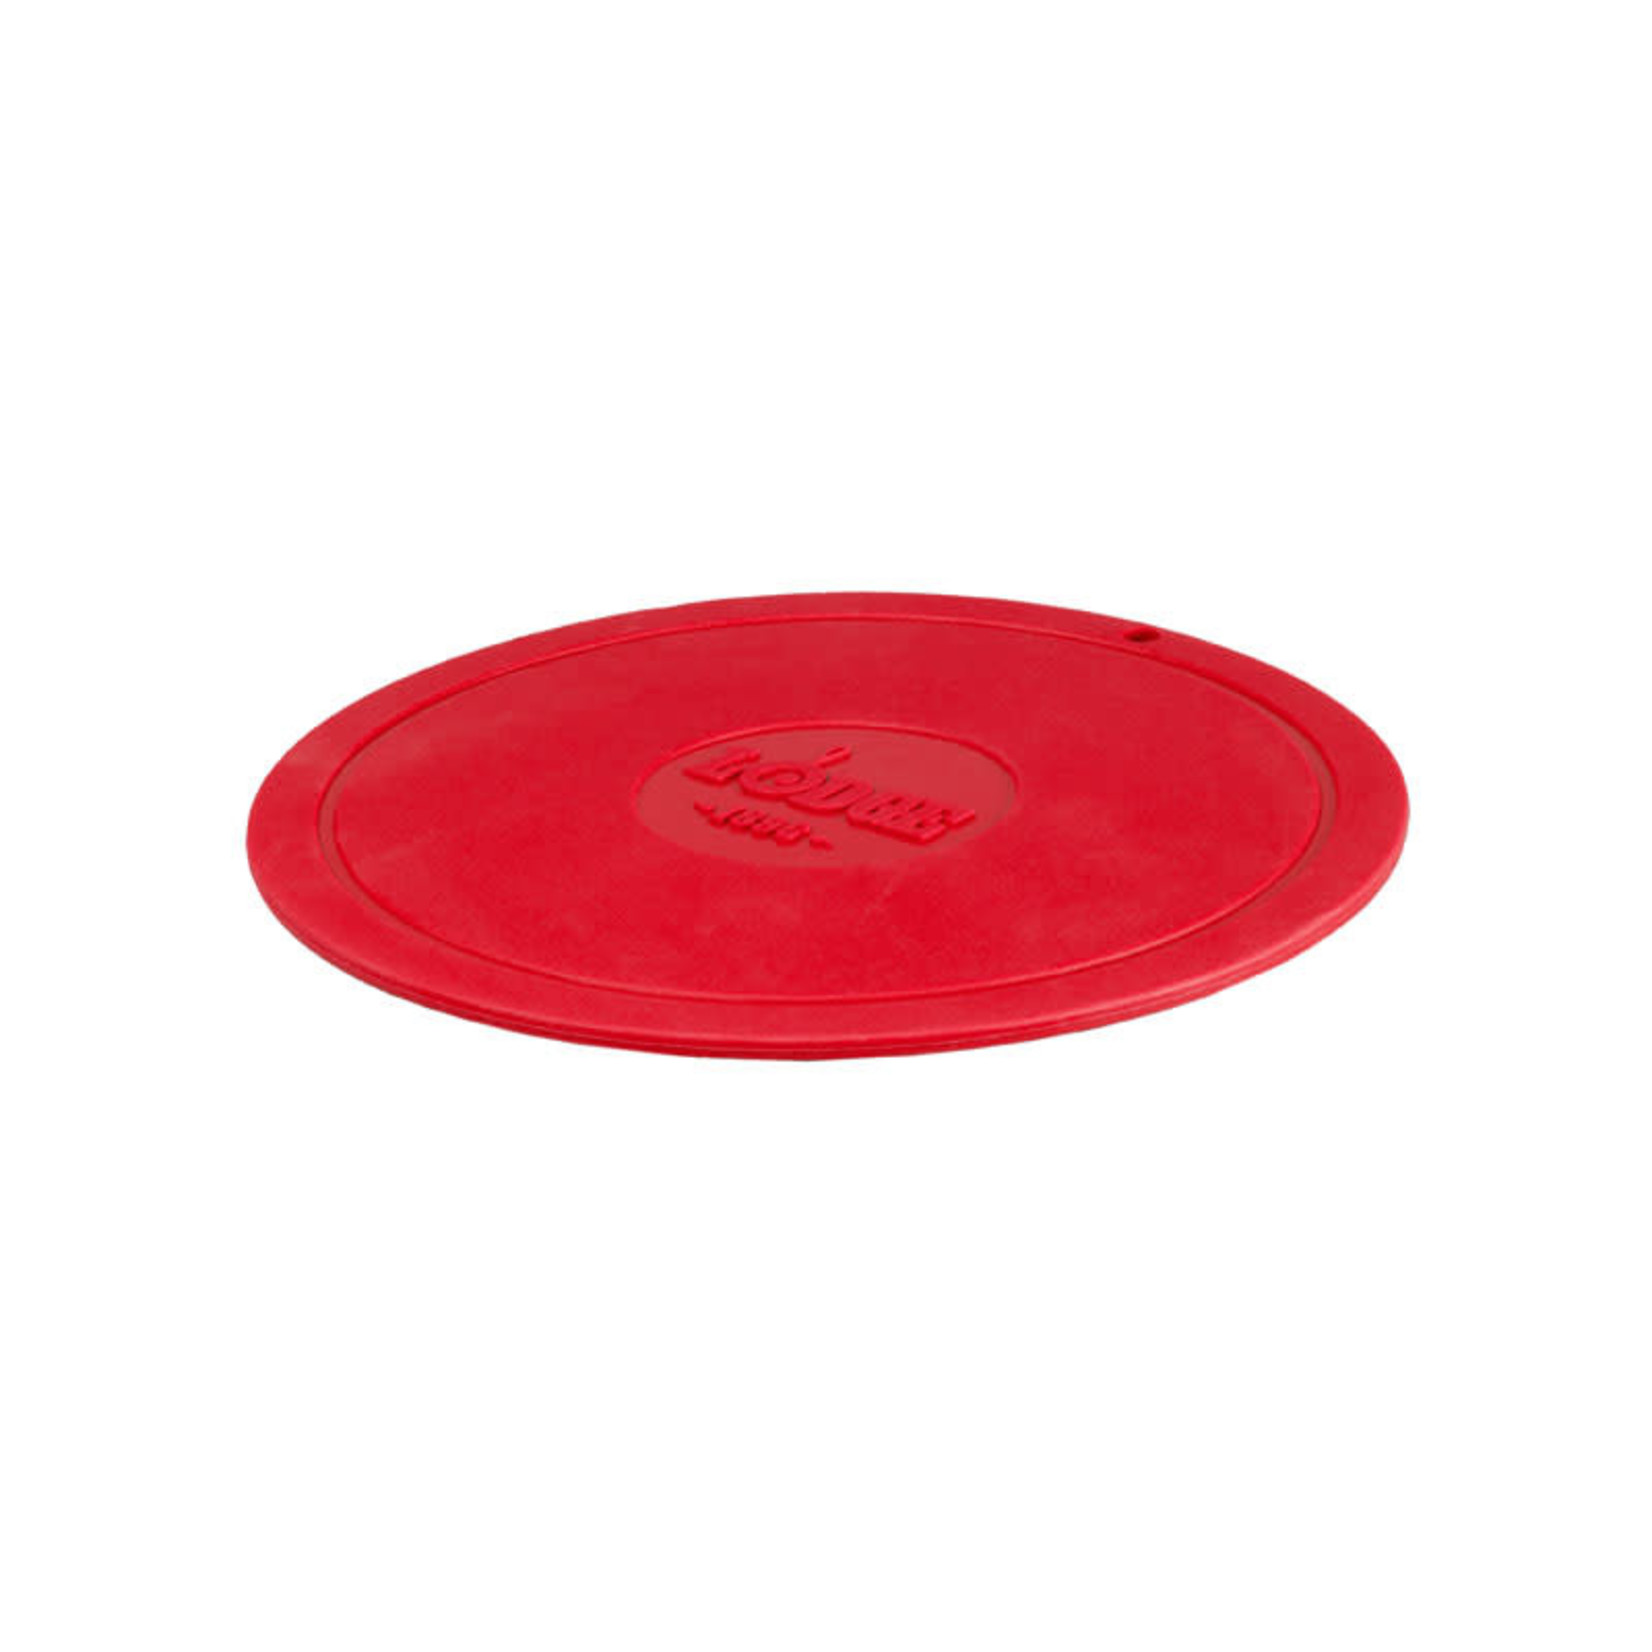 Lodge Trivet Red Silicone